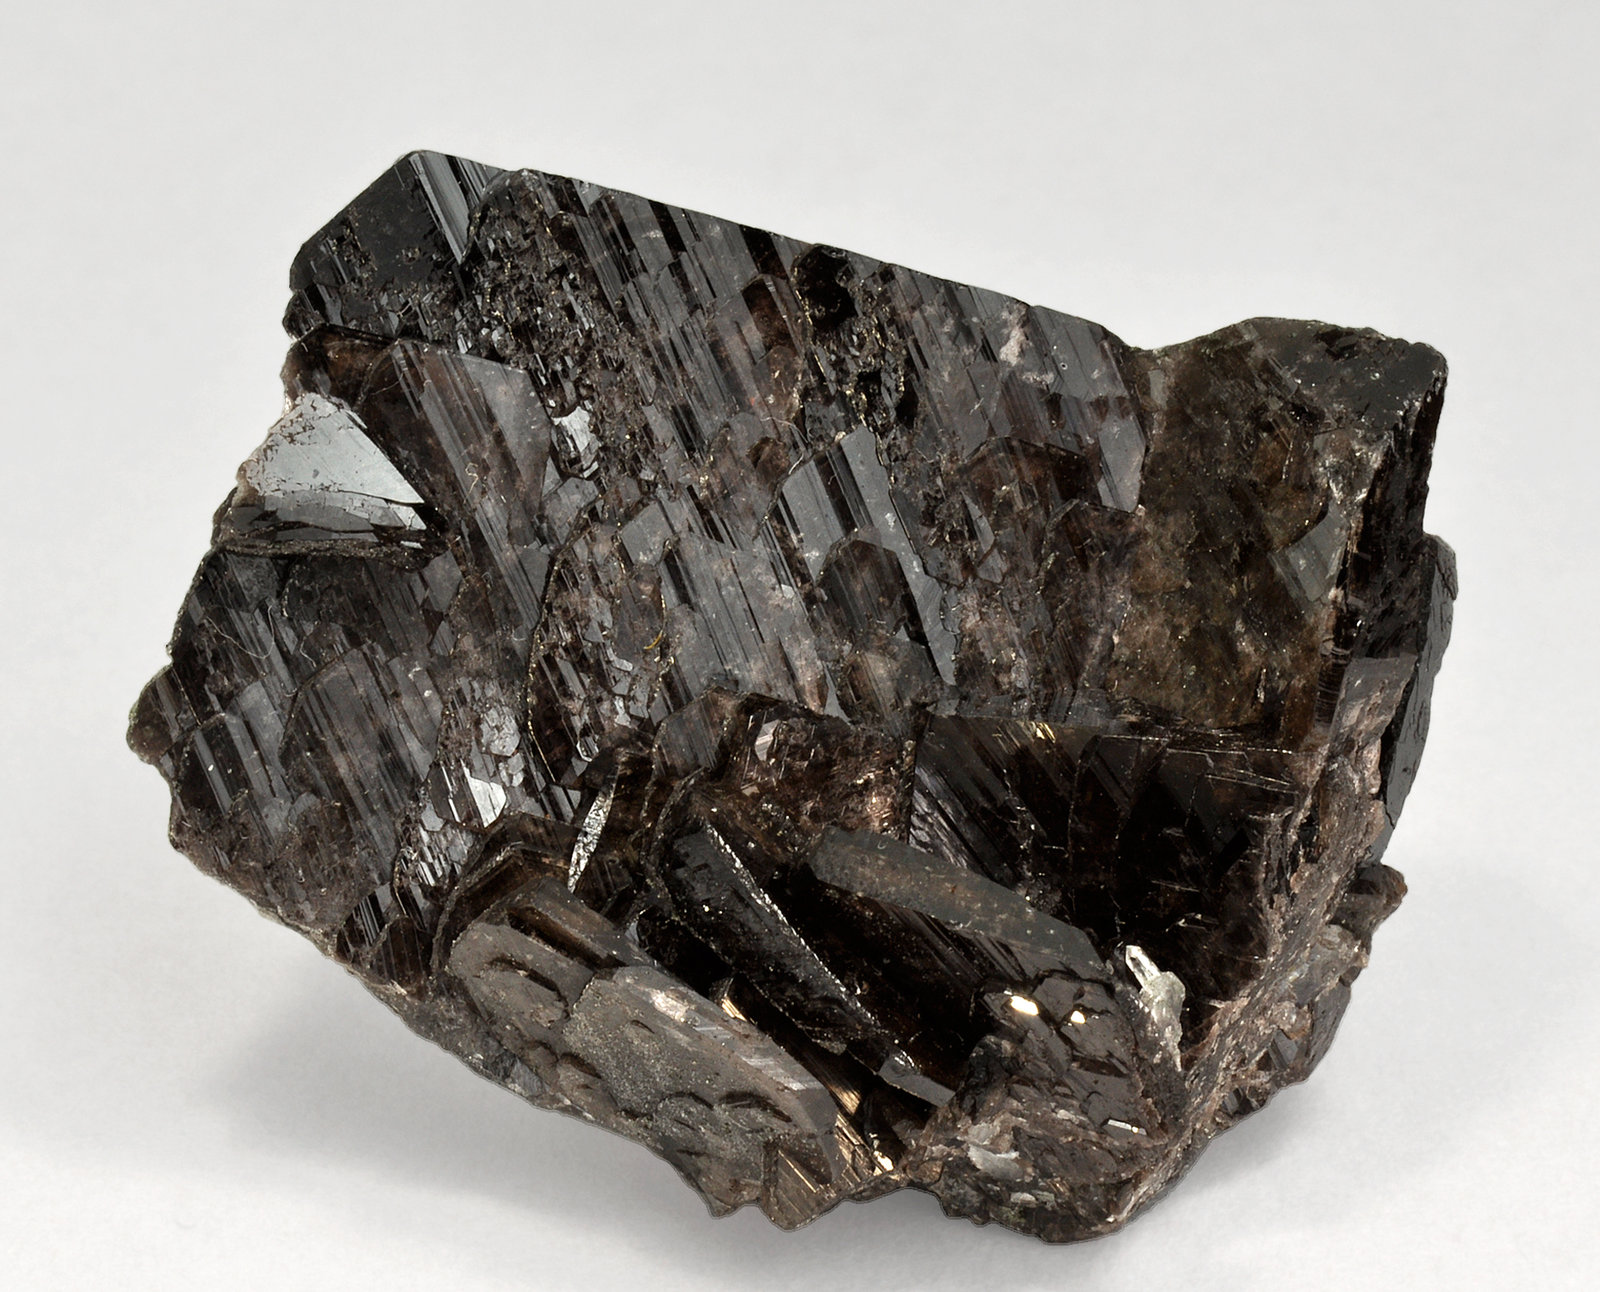 specimens/s_imagesQ8/Axinite_Fe-TT88Q8.jpg